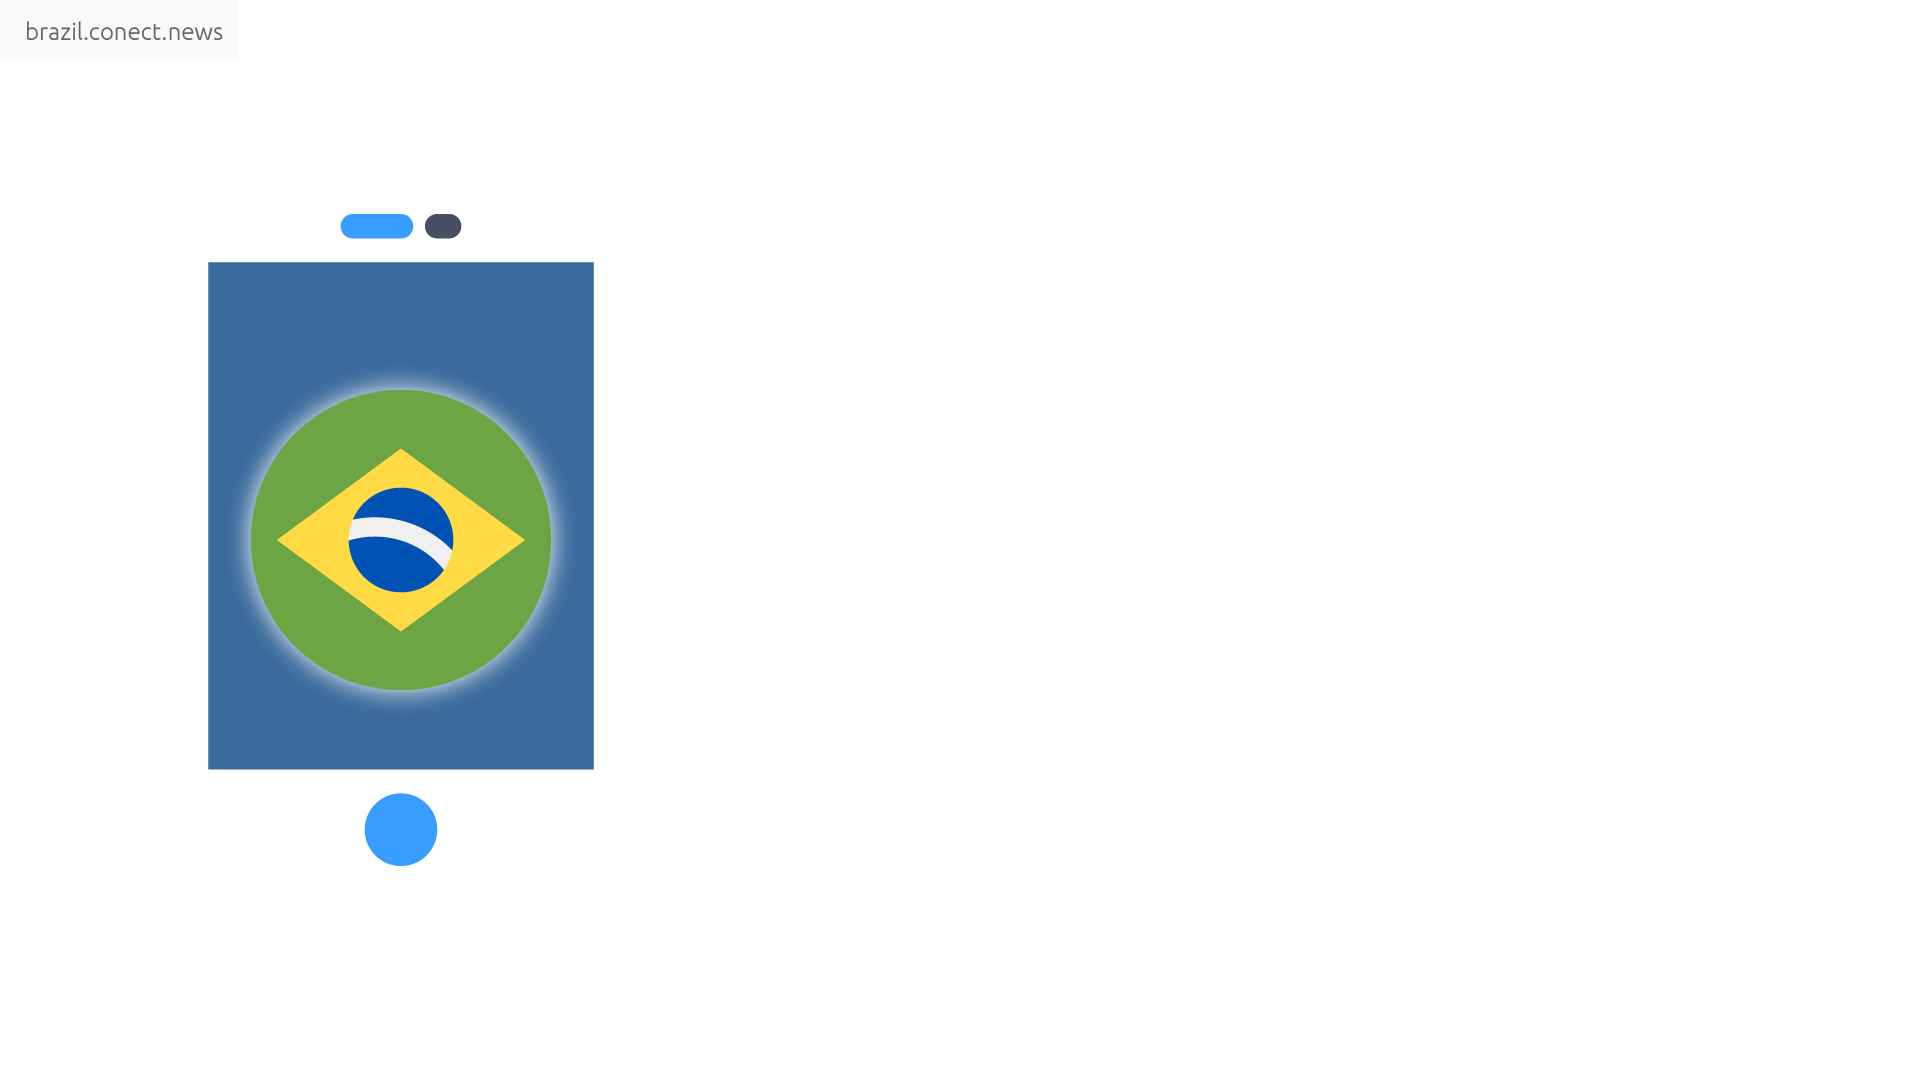 Brands and providers in Brazil @conect_news